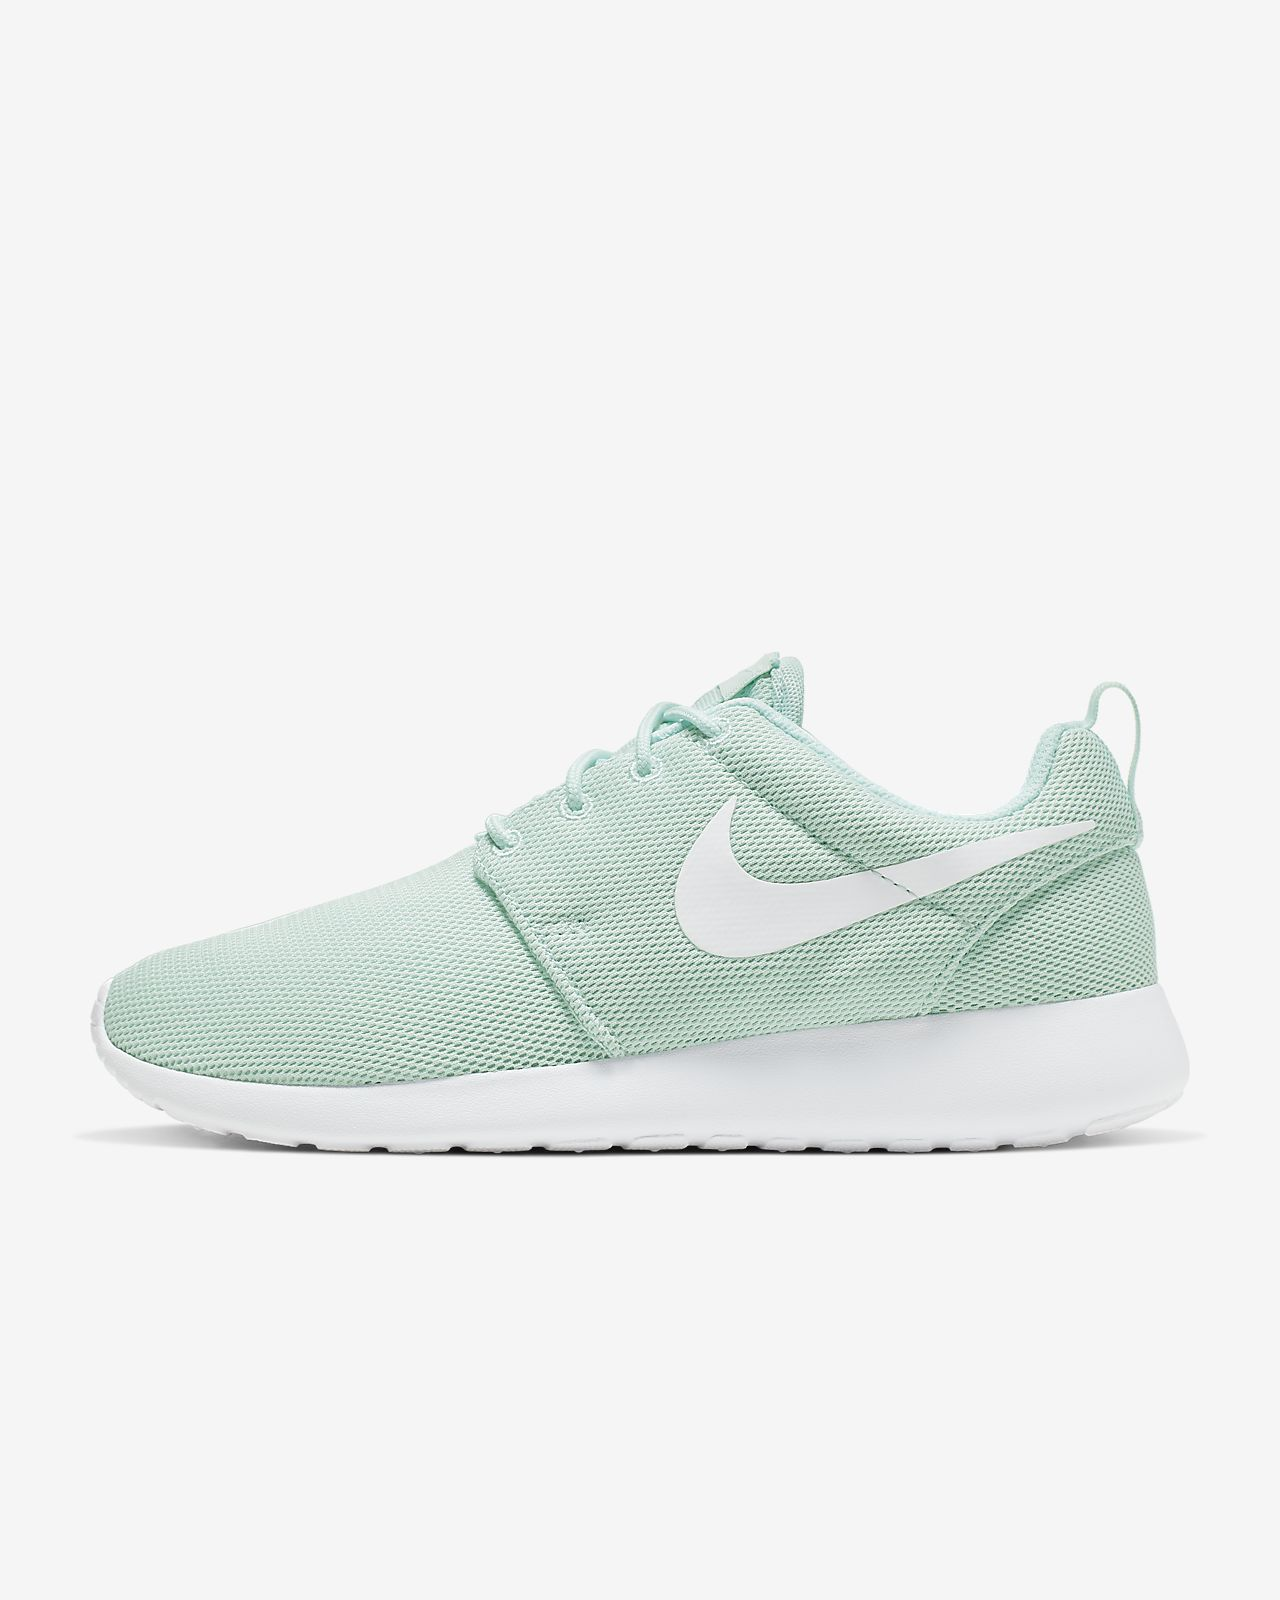 premium selection 7b819 1a9fe ... Nike Roshe One Women s Shoe